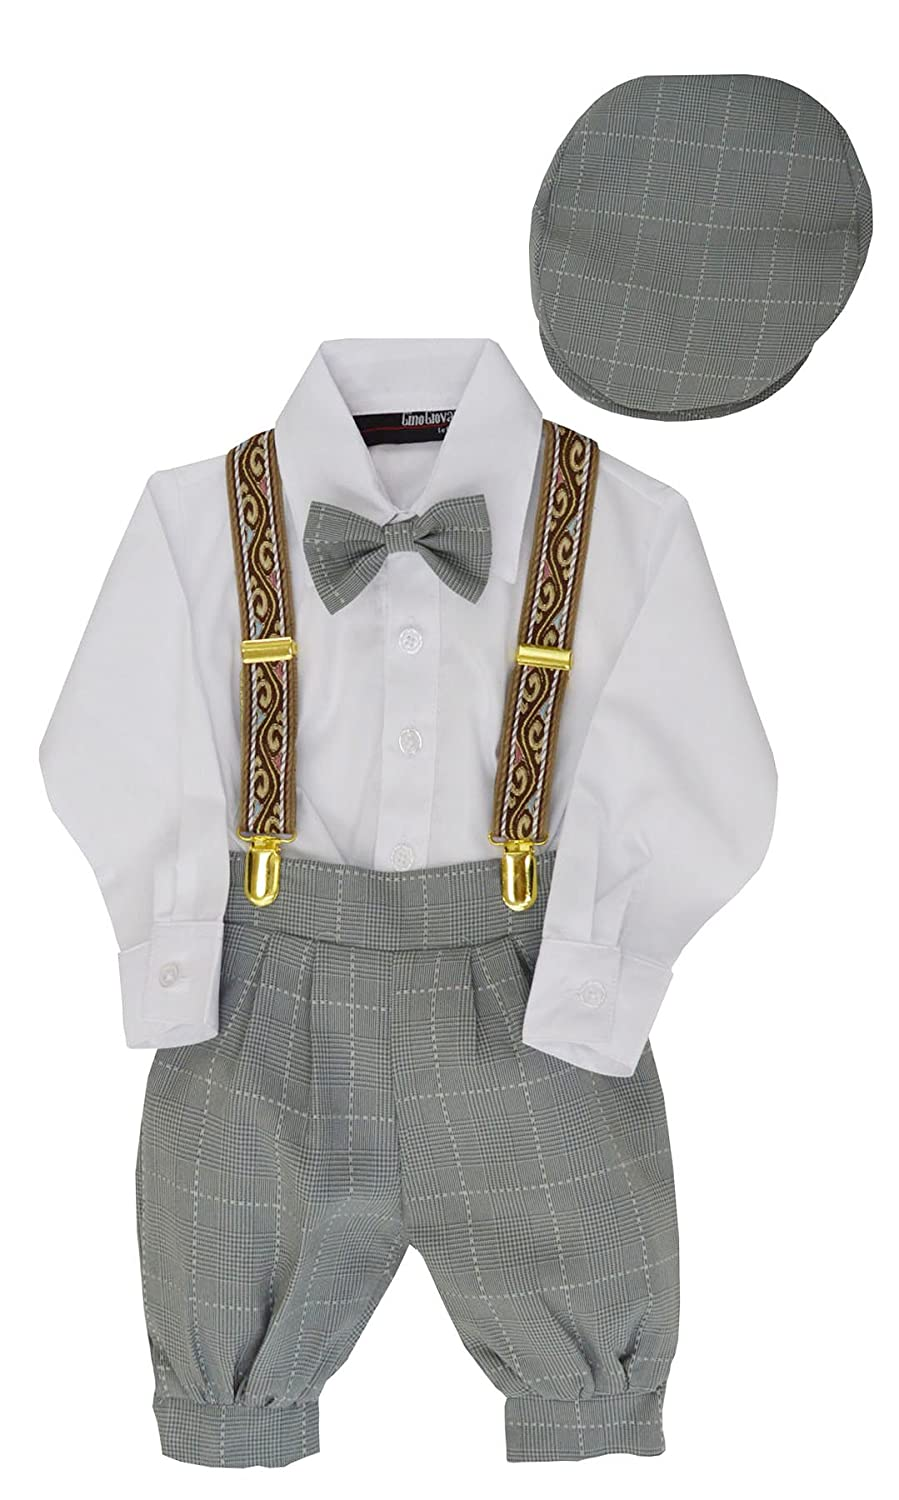 Amazon Com Gino Giovanni Baby Boys Vintage Knickers Outfit